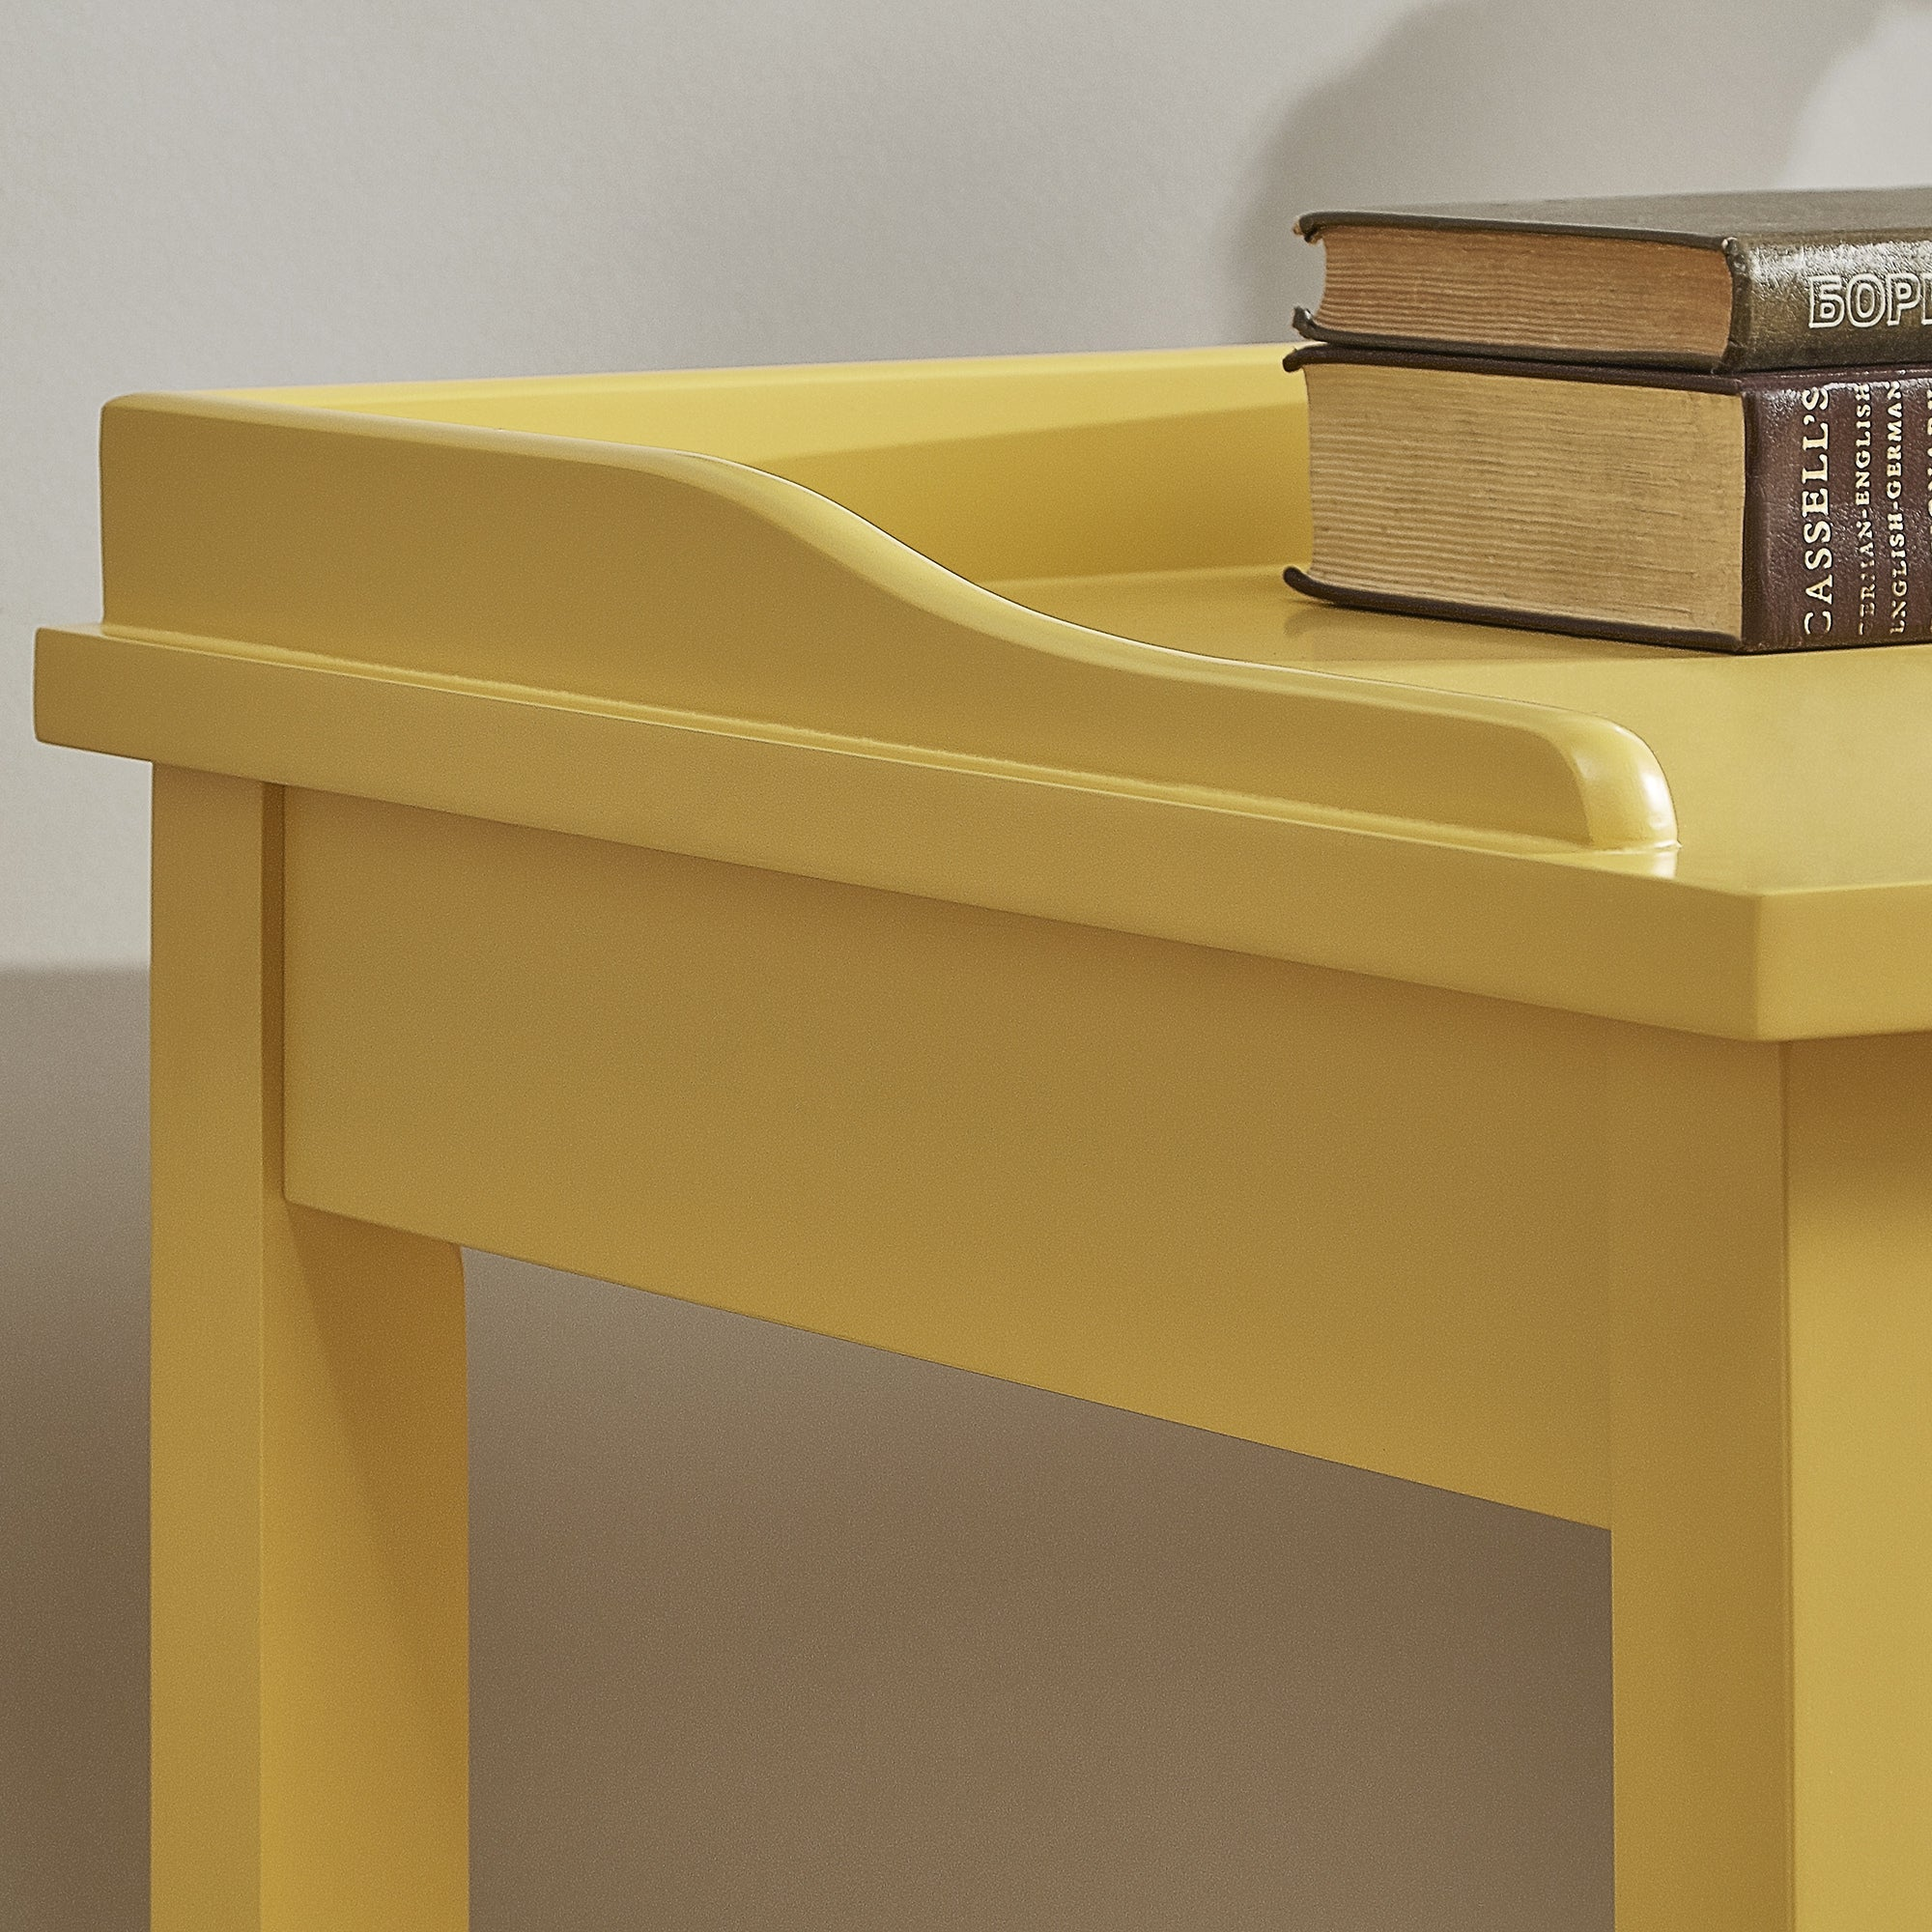 v desk crowdyhouse on shop bcike square laud m small kandiline table yellow